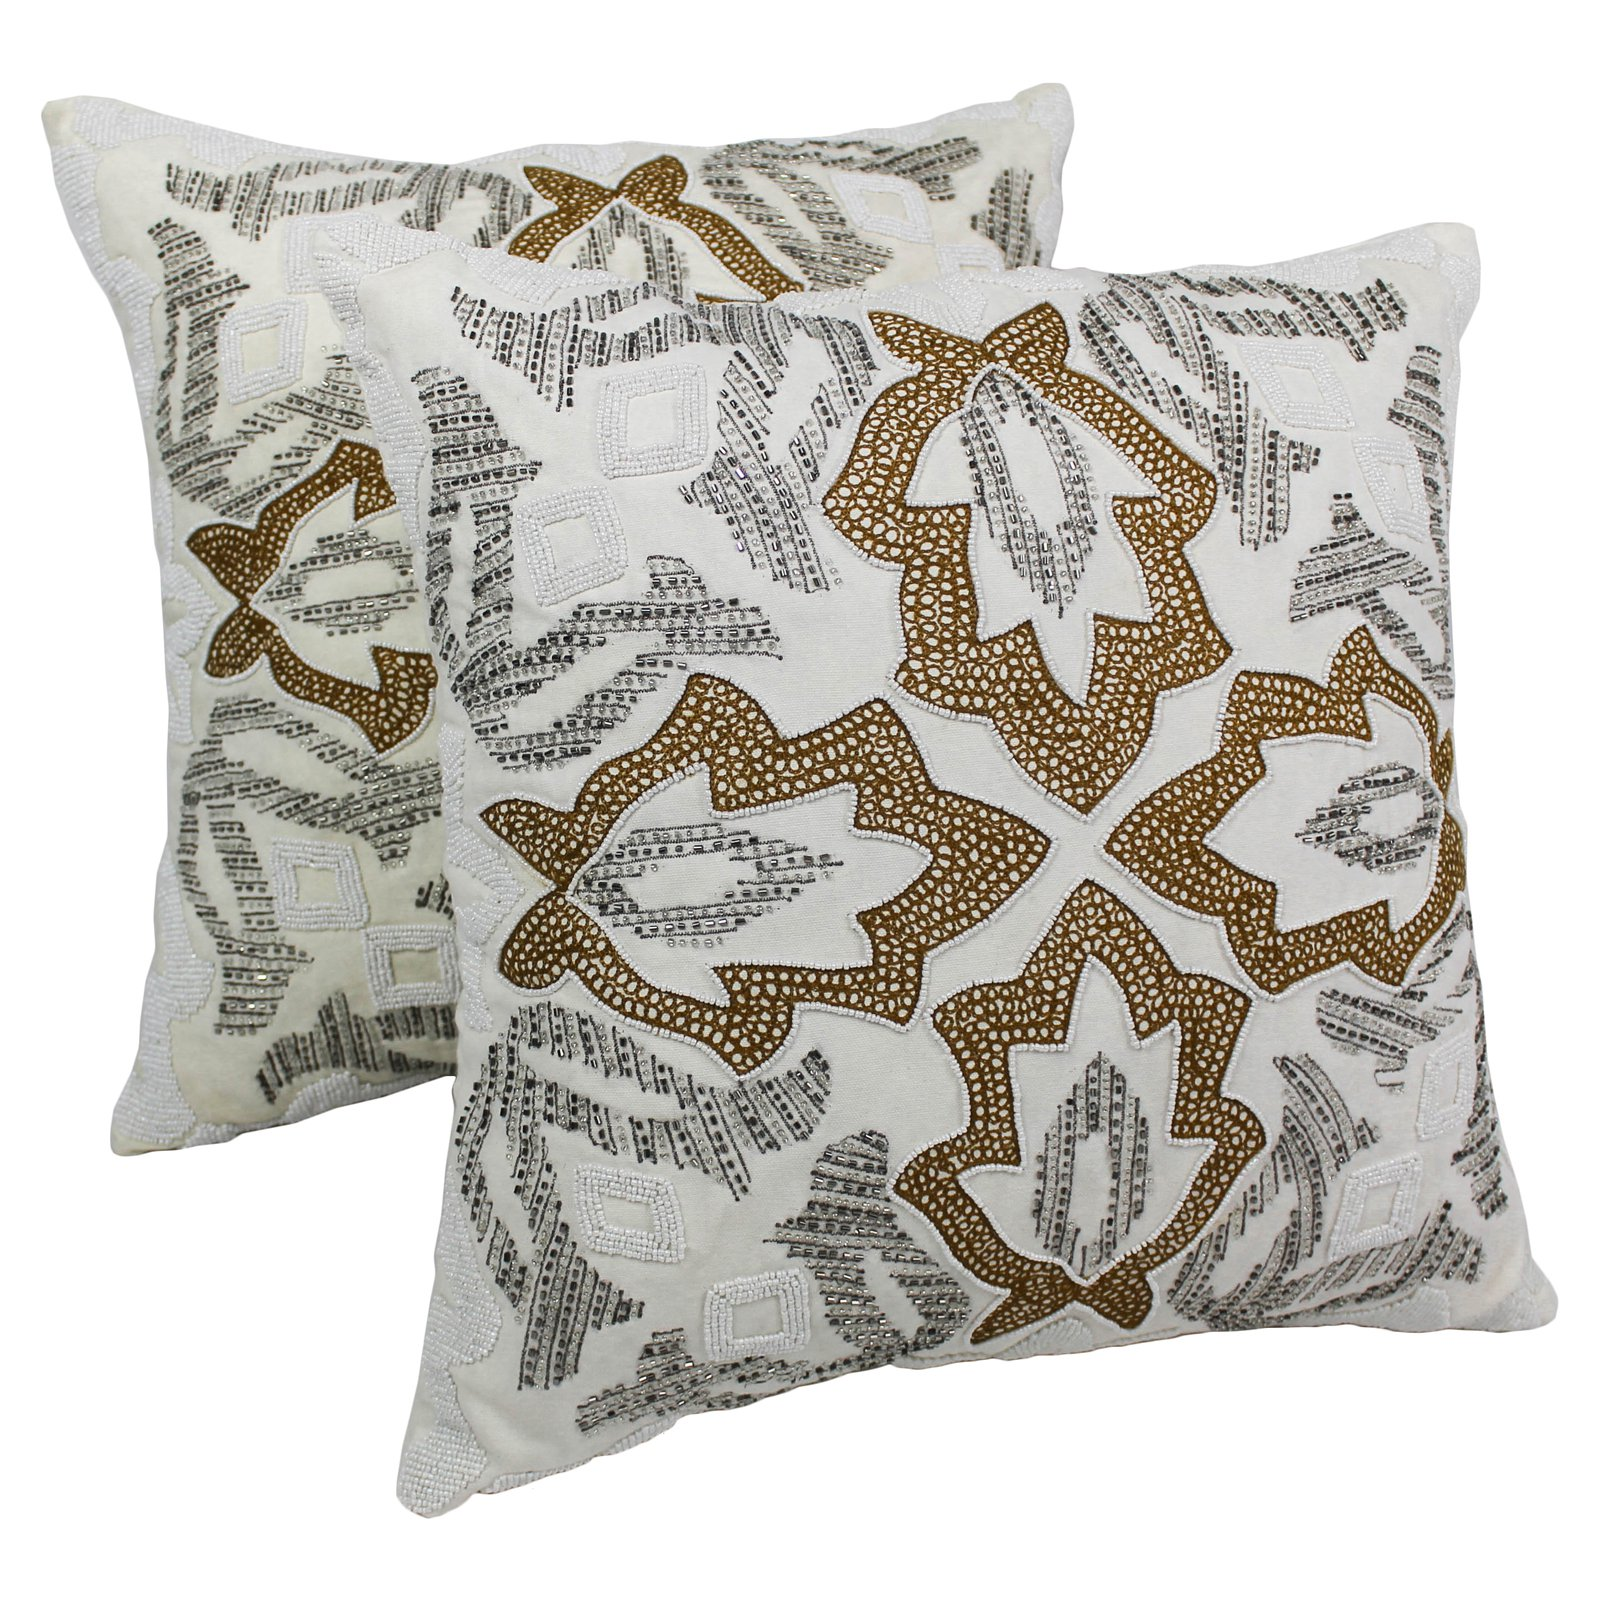 Blazing Needles 20 x 20 in. Symmetrical Floral Beaded Throw Pillow - Set of 2